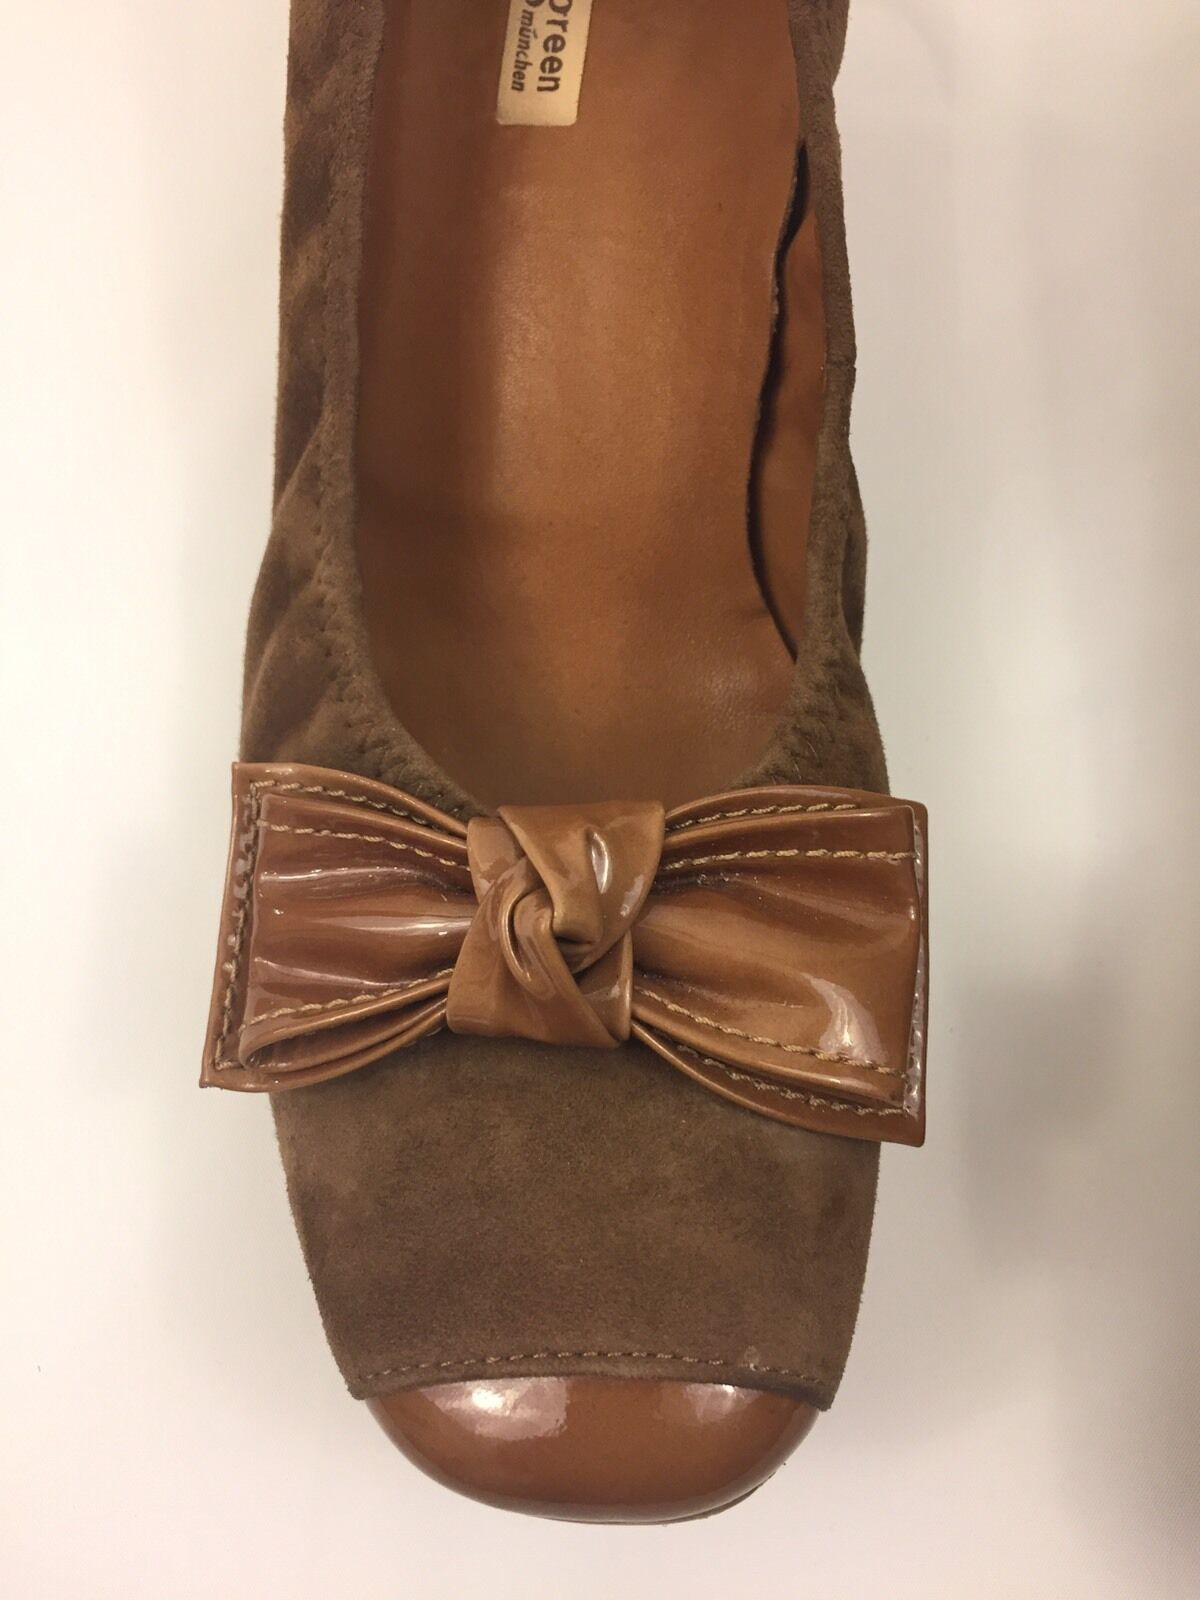 Paul Green Woman's Brown Suede Leather Wedge Wedge Wedge Heel shoes Size 6.5 M RP 289 946a15